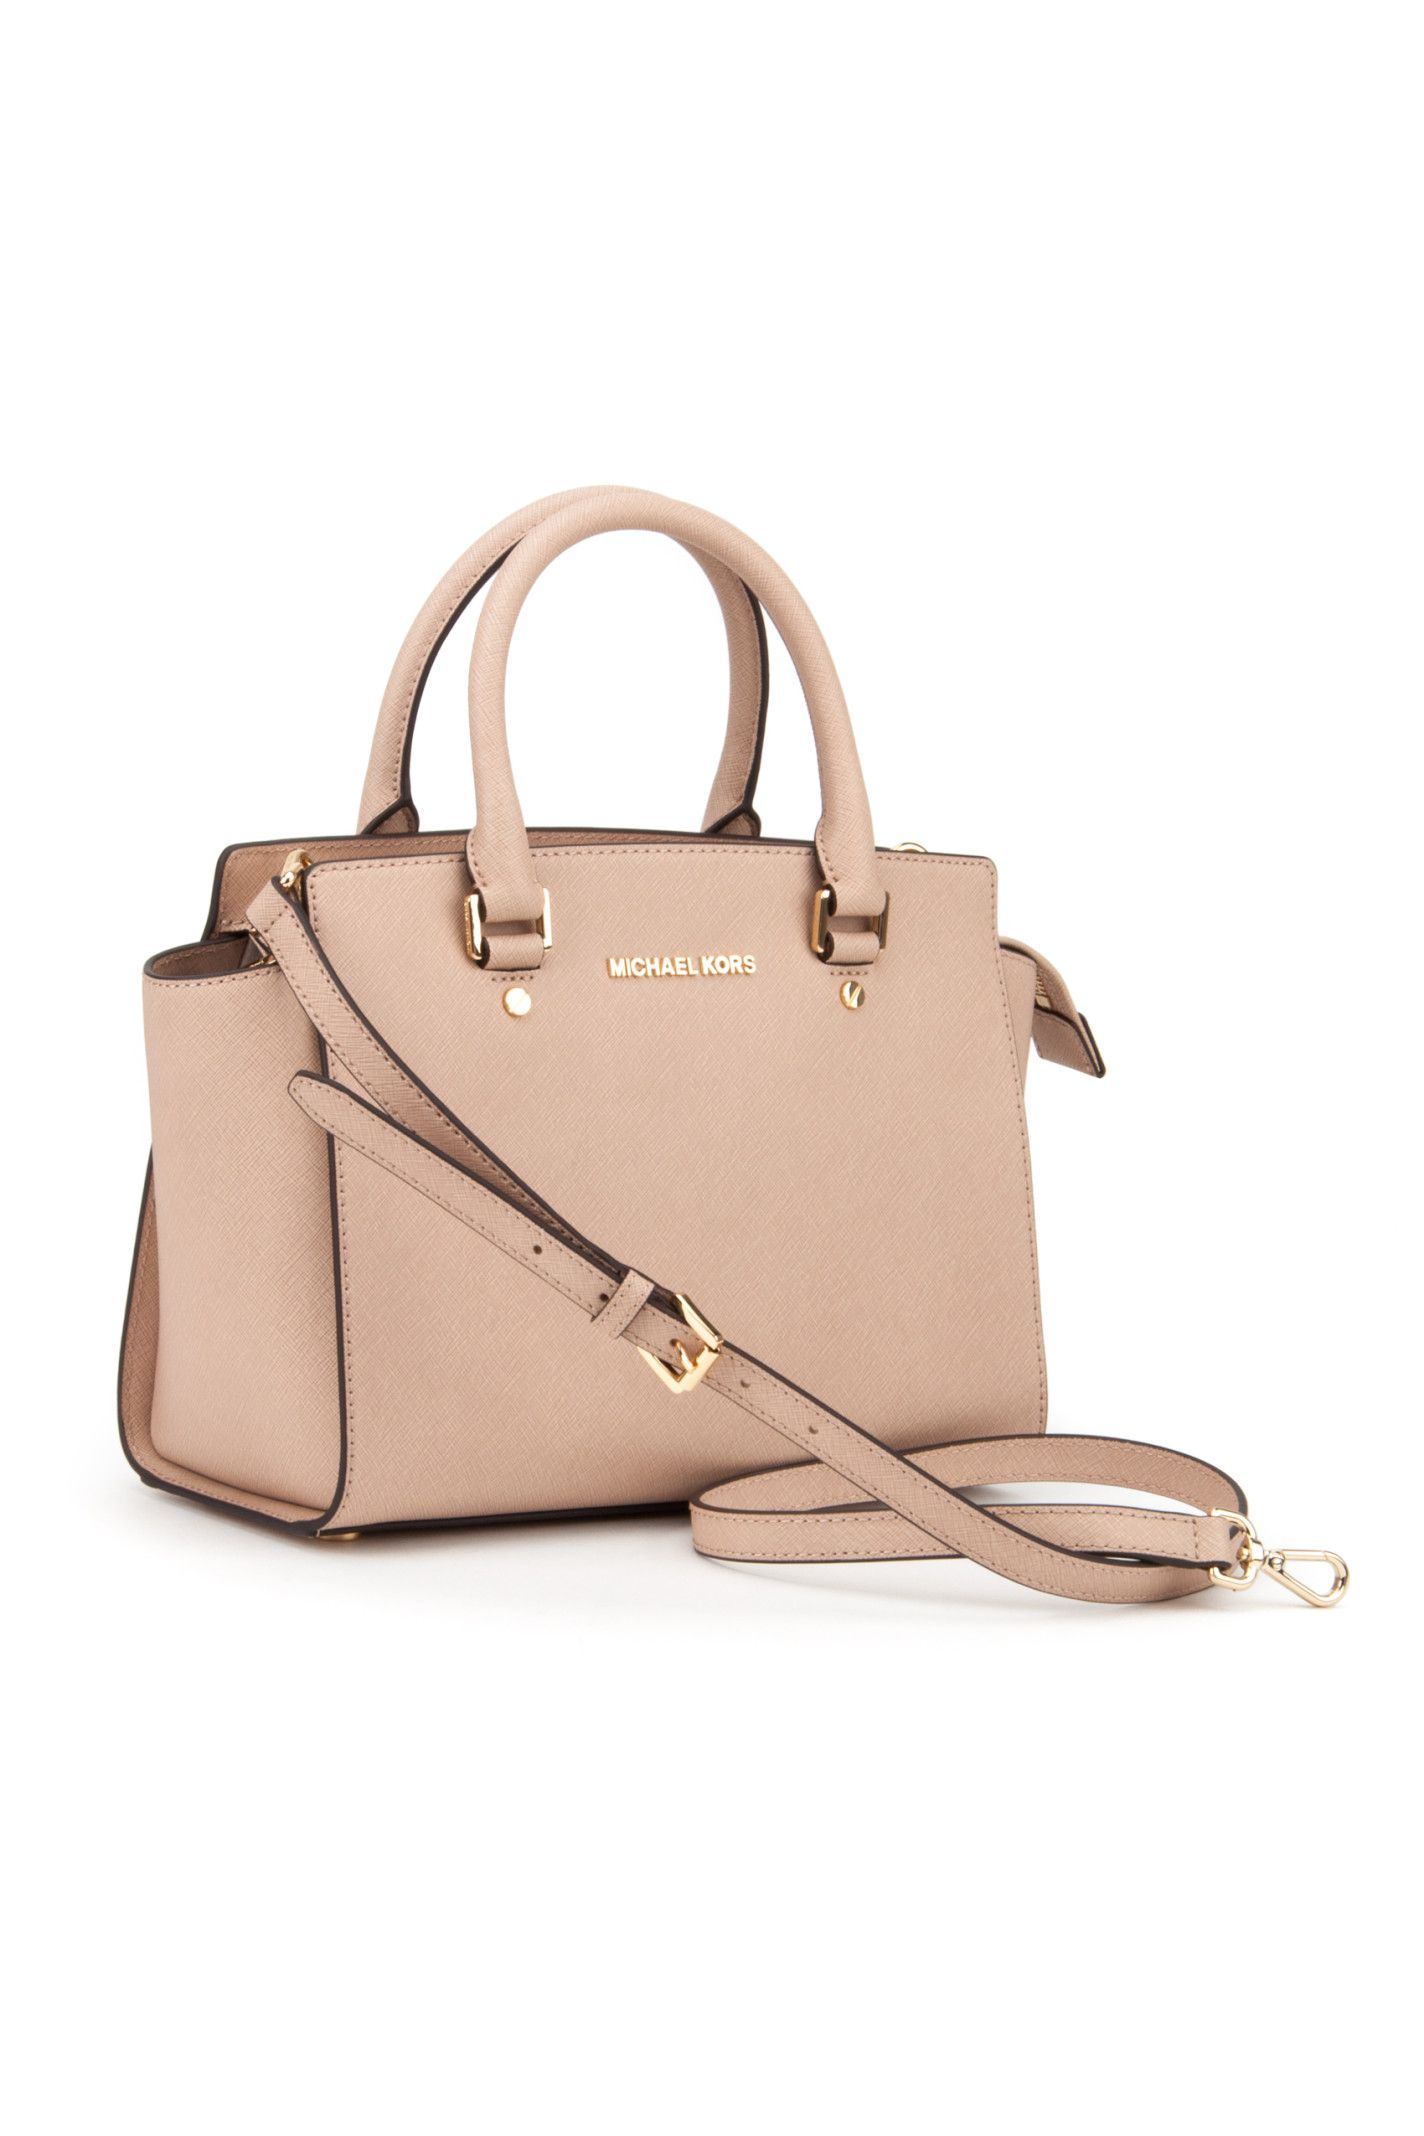 Michael Kors Selma Satchel Talent